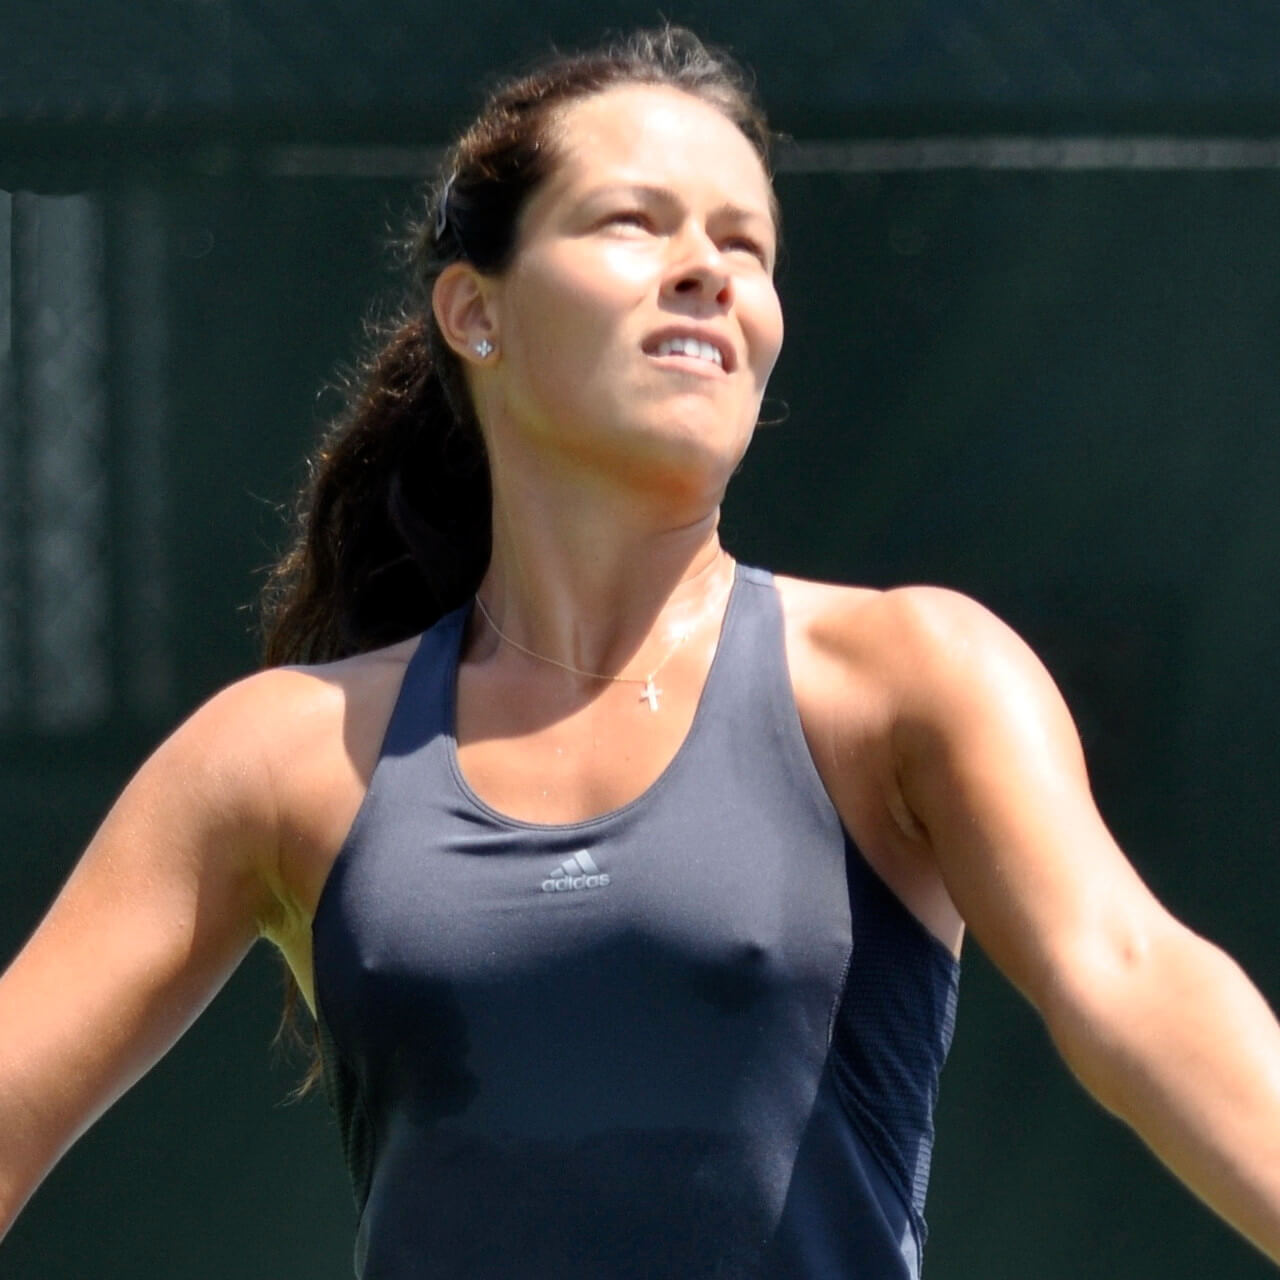 Ana ivanovic in sports bra gets wet 7